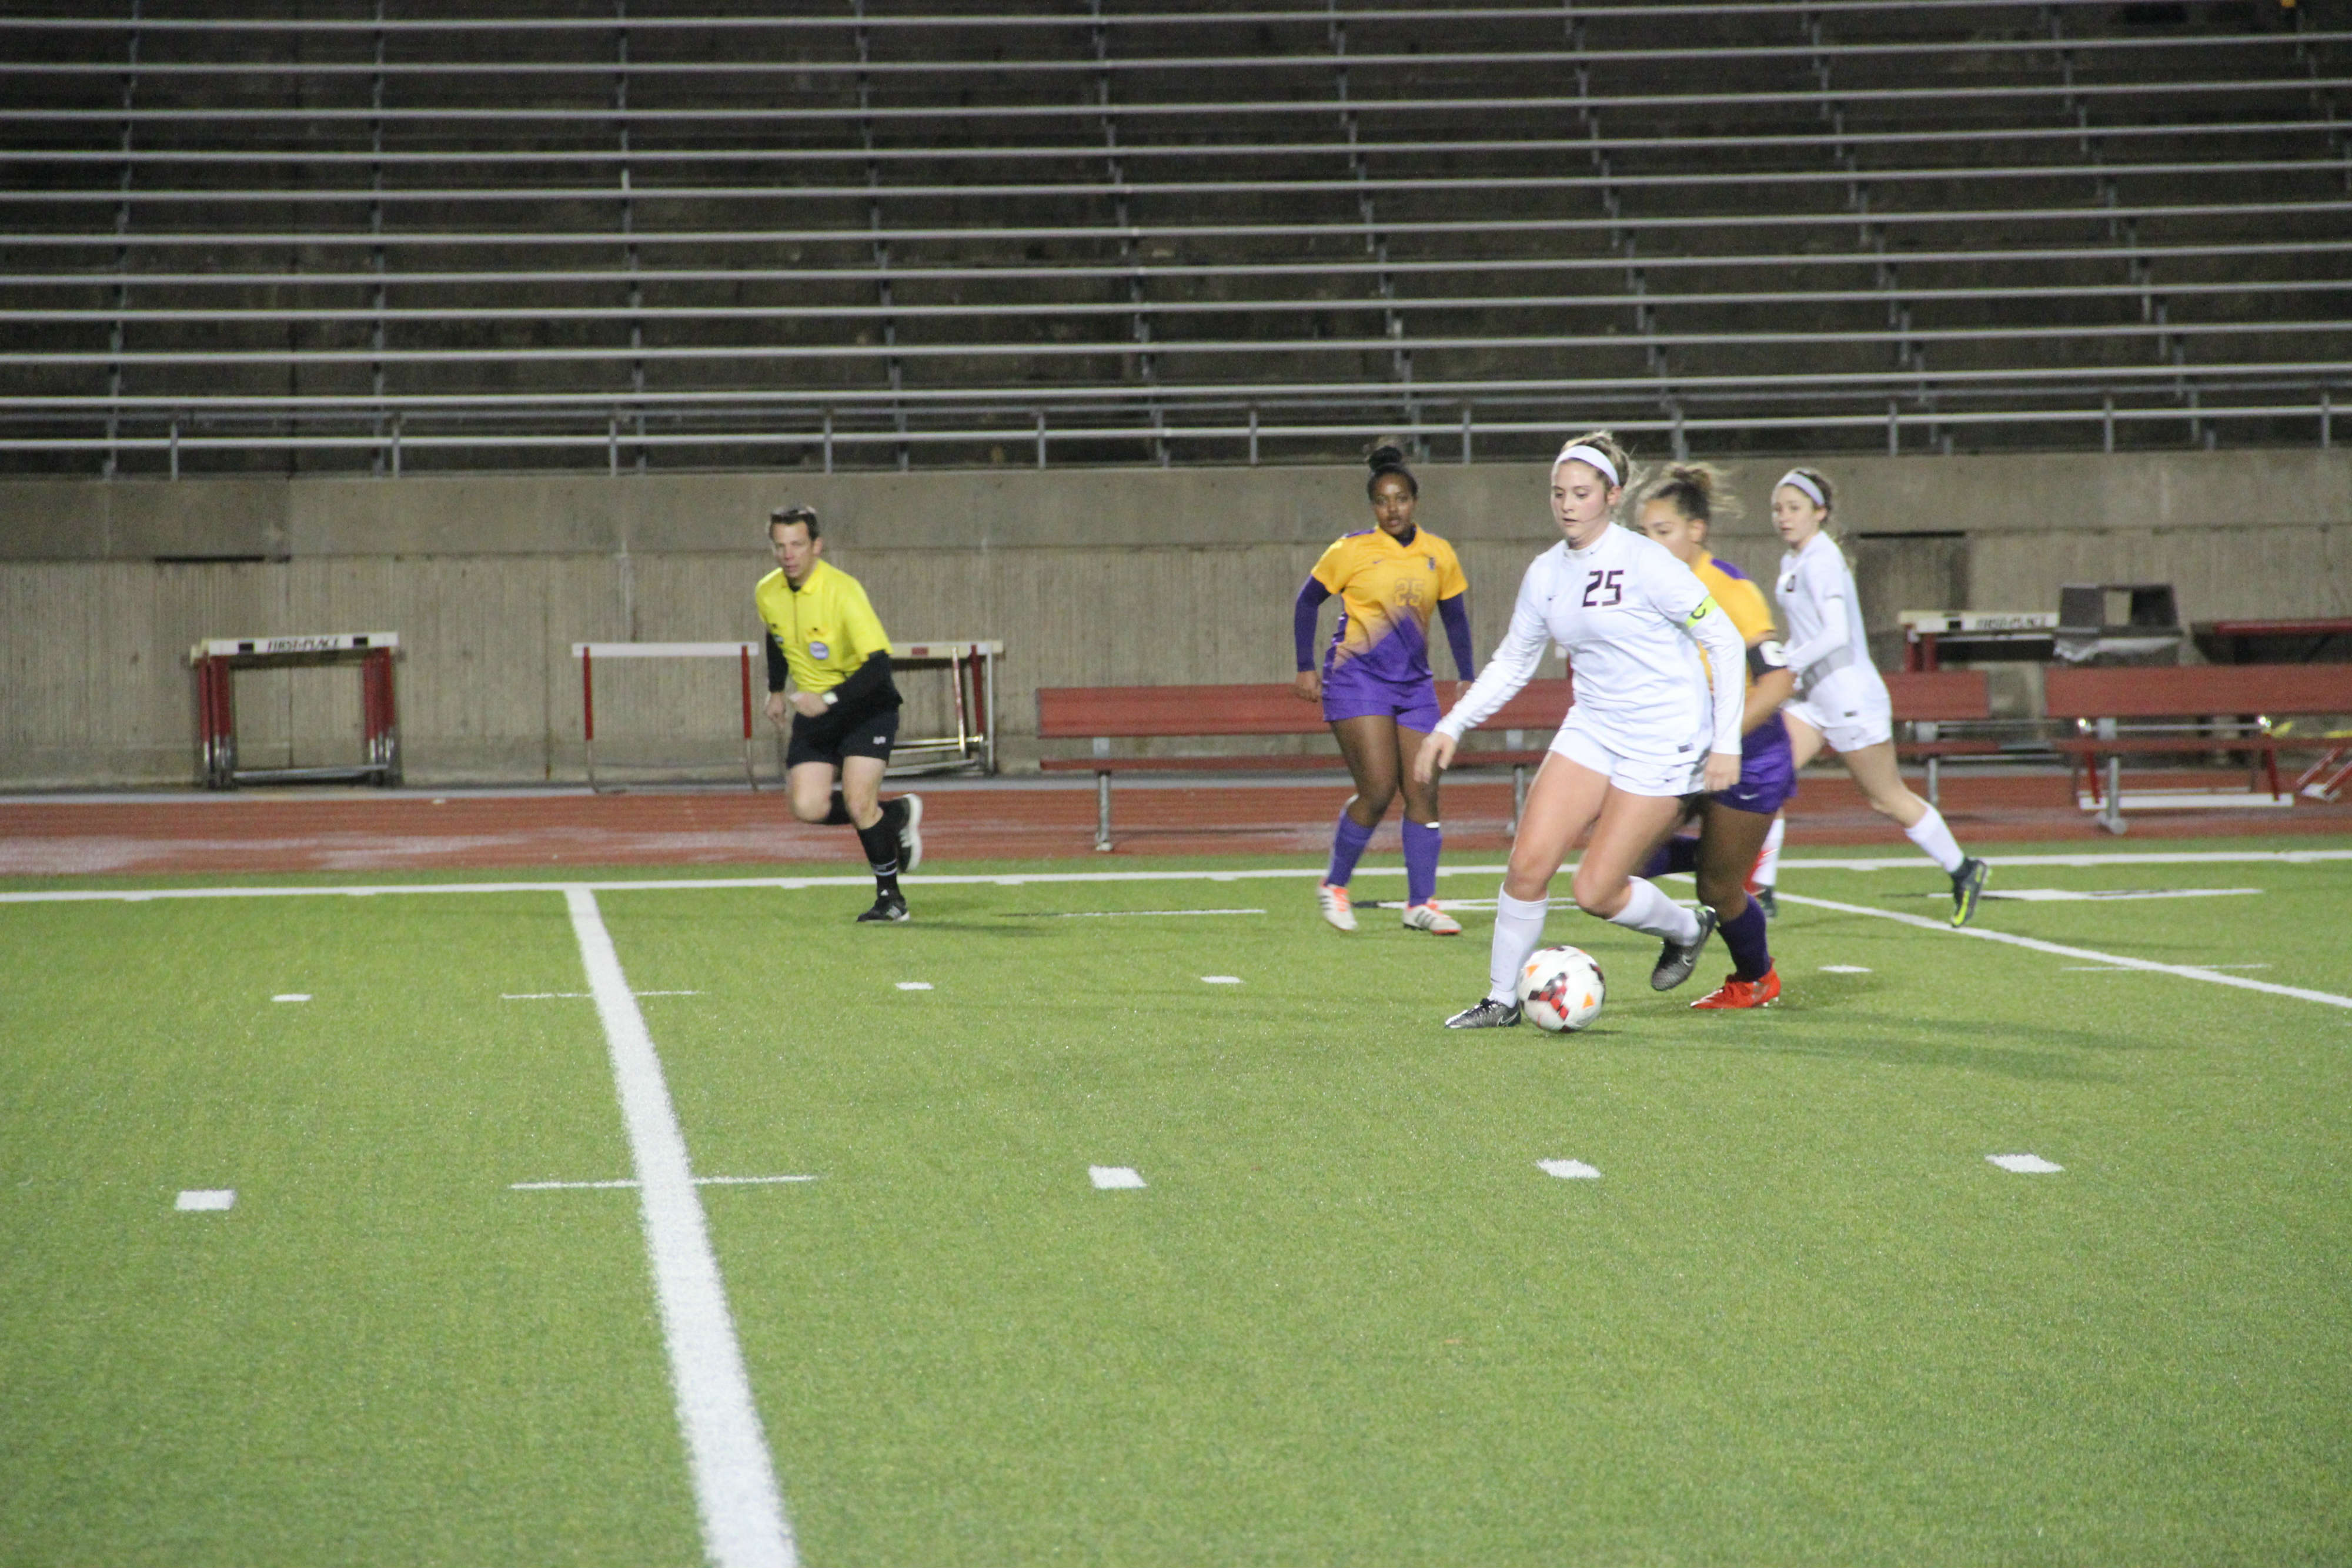 Coppell junior forward and Arkansas commit Tyler Runnels possesses the ball in the Cowgirls 5-0 win over Richardson on Tuesday night. The Cowgirls extended their winning streak to 13. Photo by Chloe Navarro.